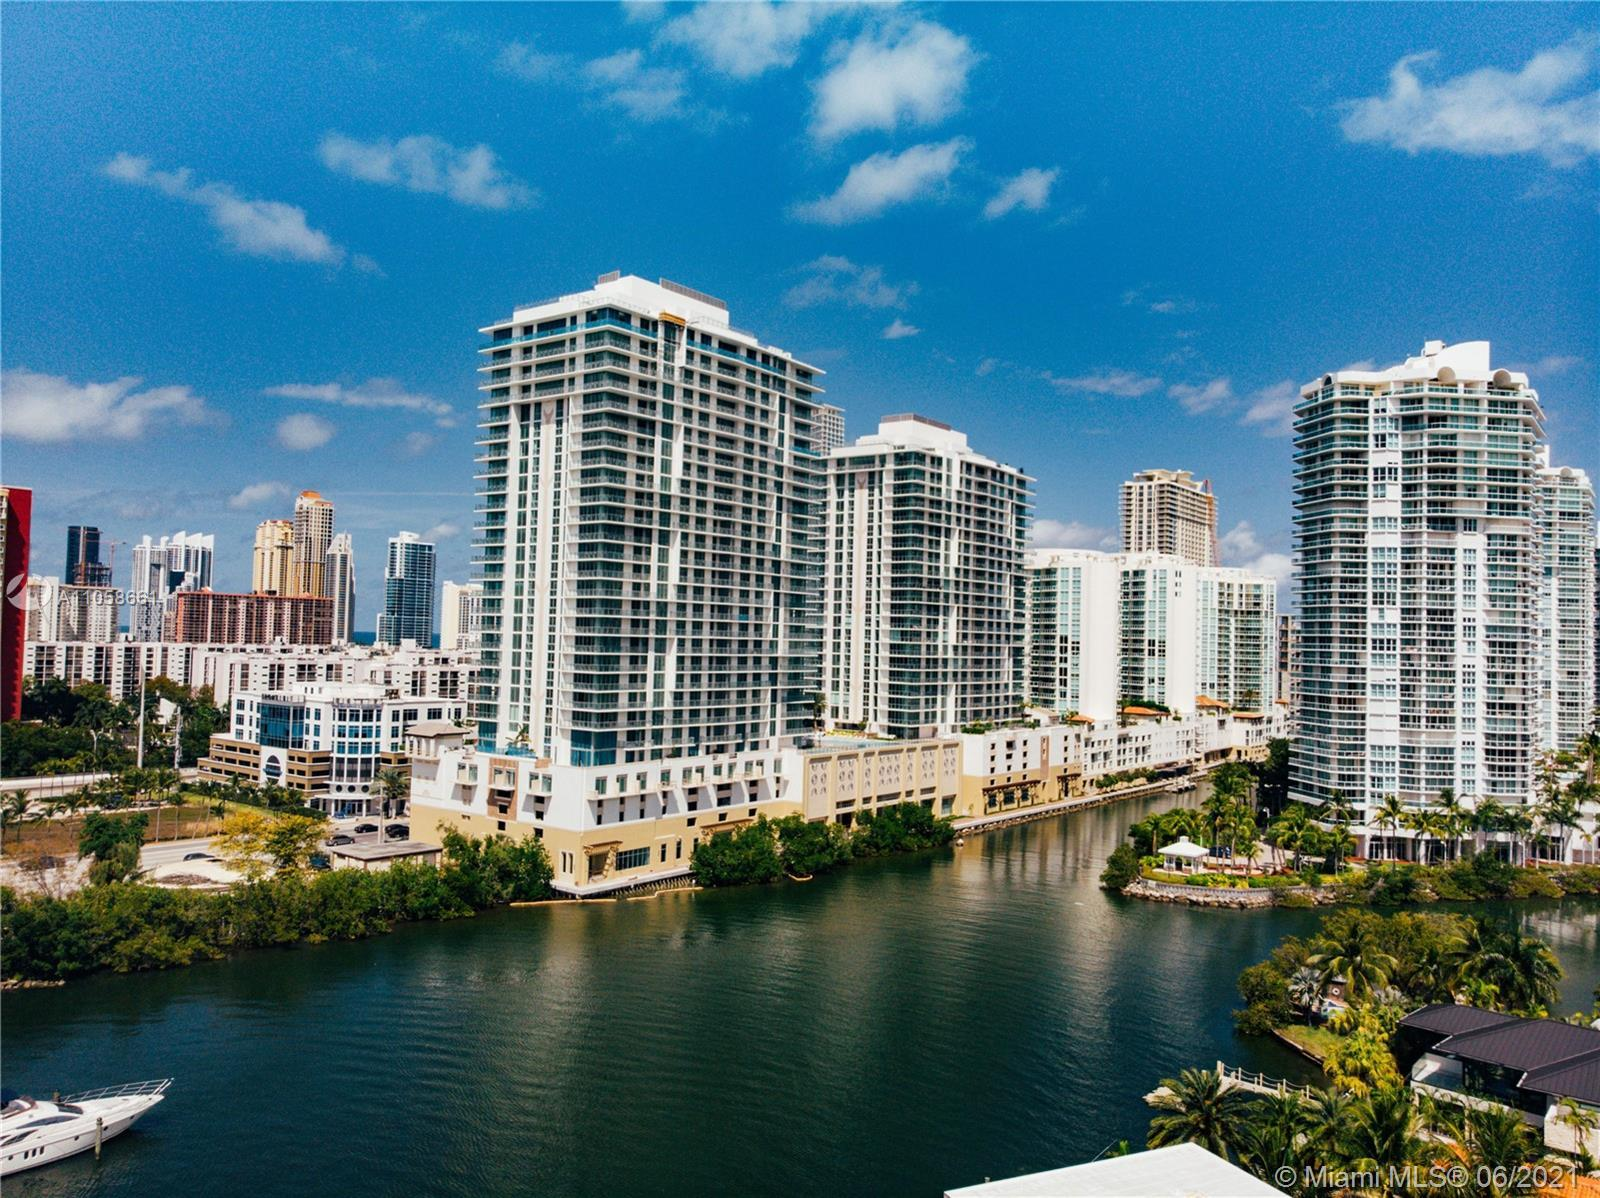 FEEL THE LUXURY IN THIS BRAND NEW 4/4.5, 3,084 SQ.FT. UNIT AT PARQUE TOWERS IN SUNNY ISLES. MOVE IN